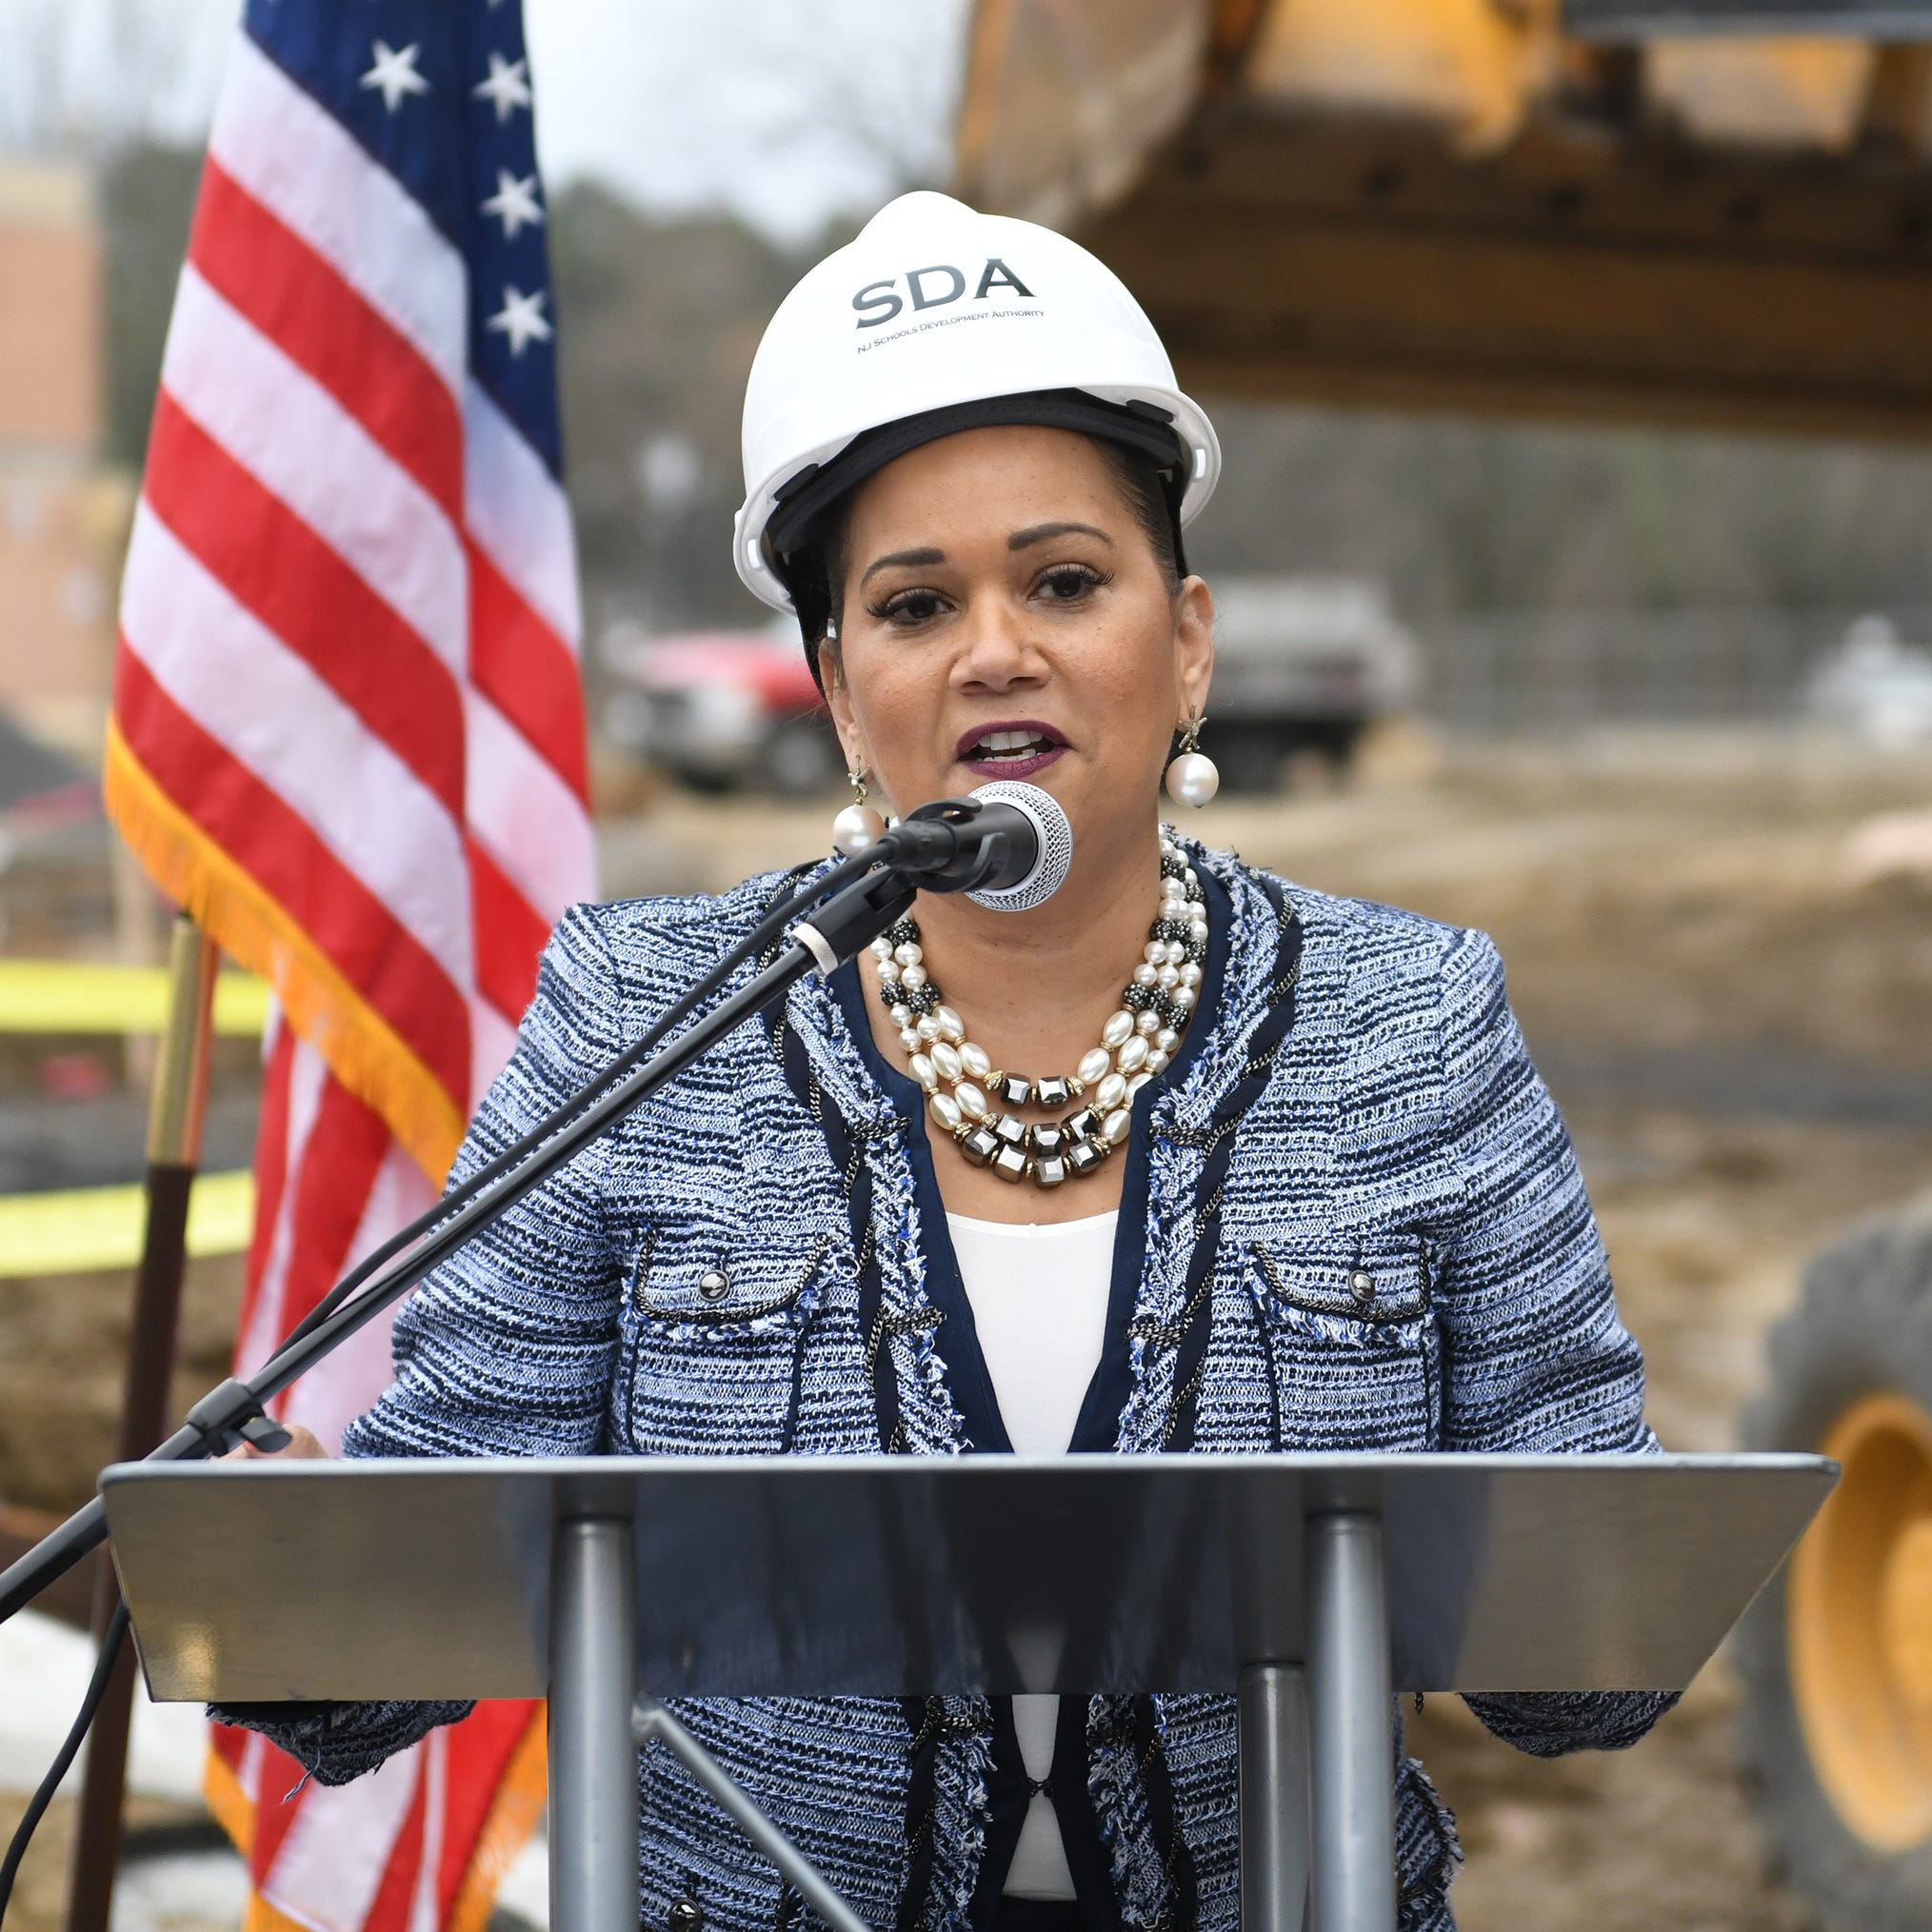 For years, NJ schools construction CEO's bio said she graduated from college. She didn't